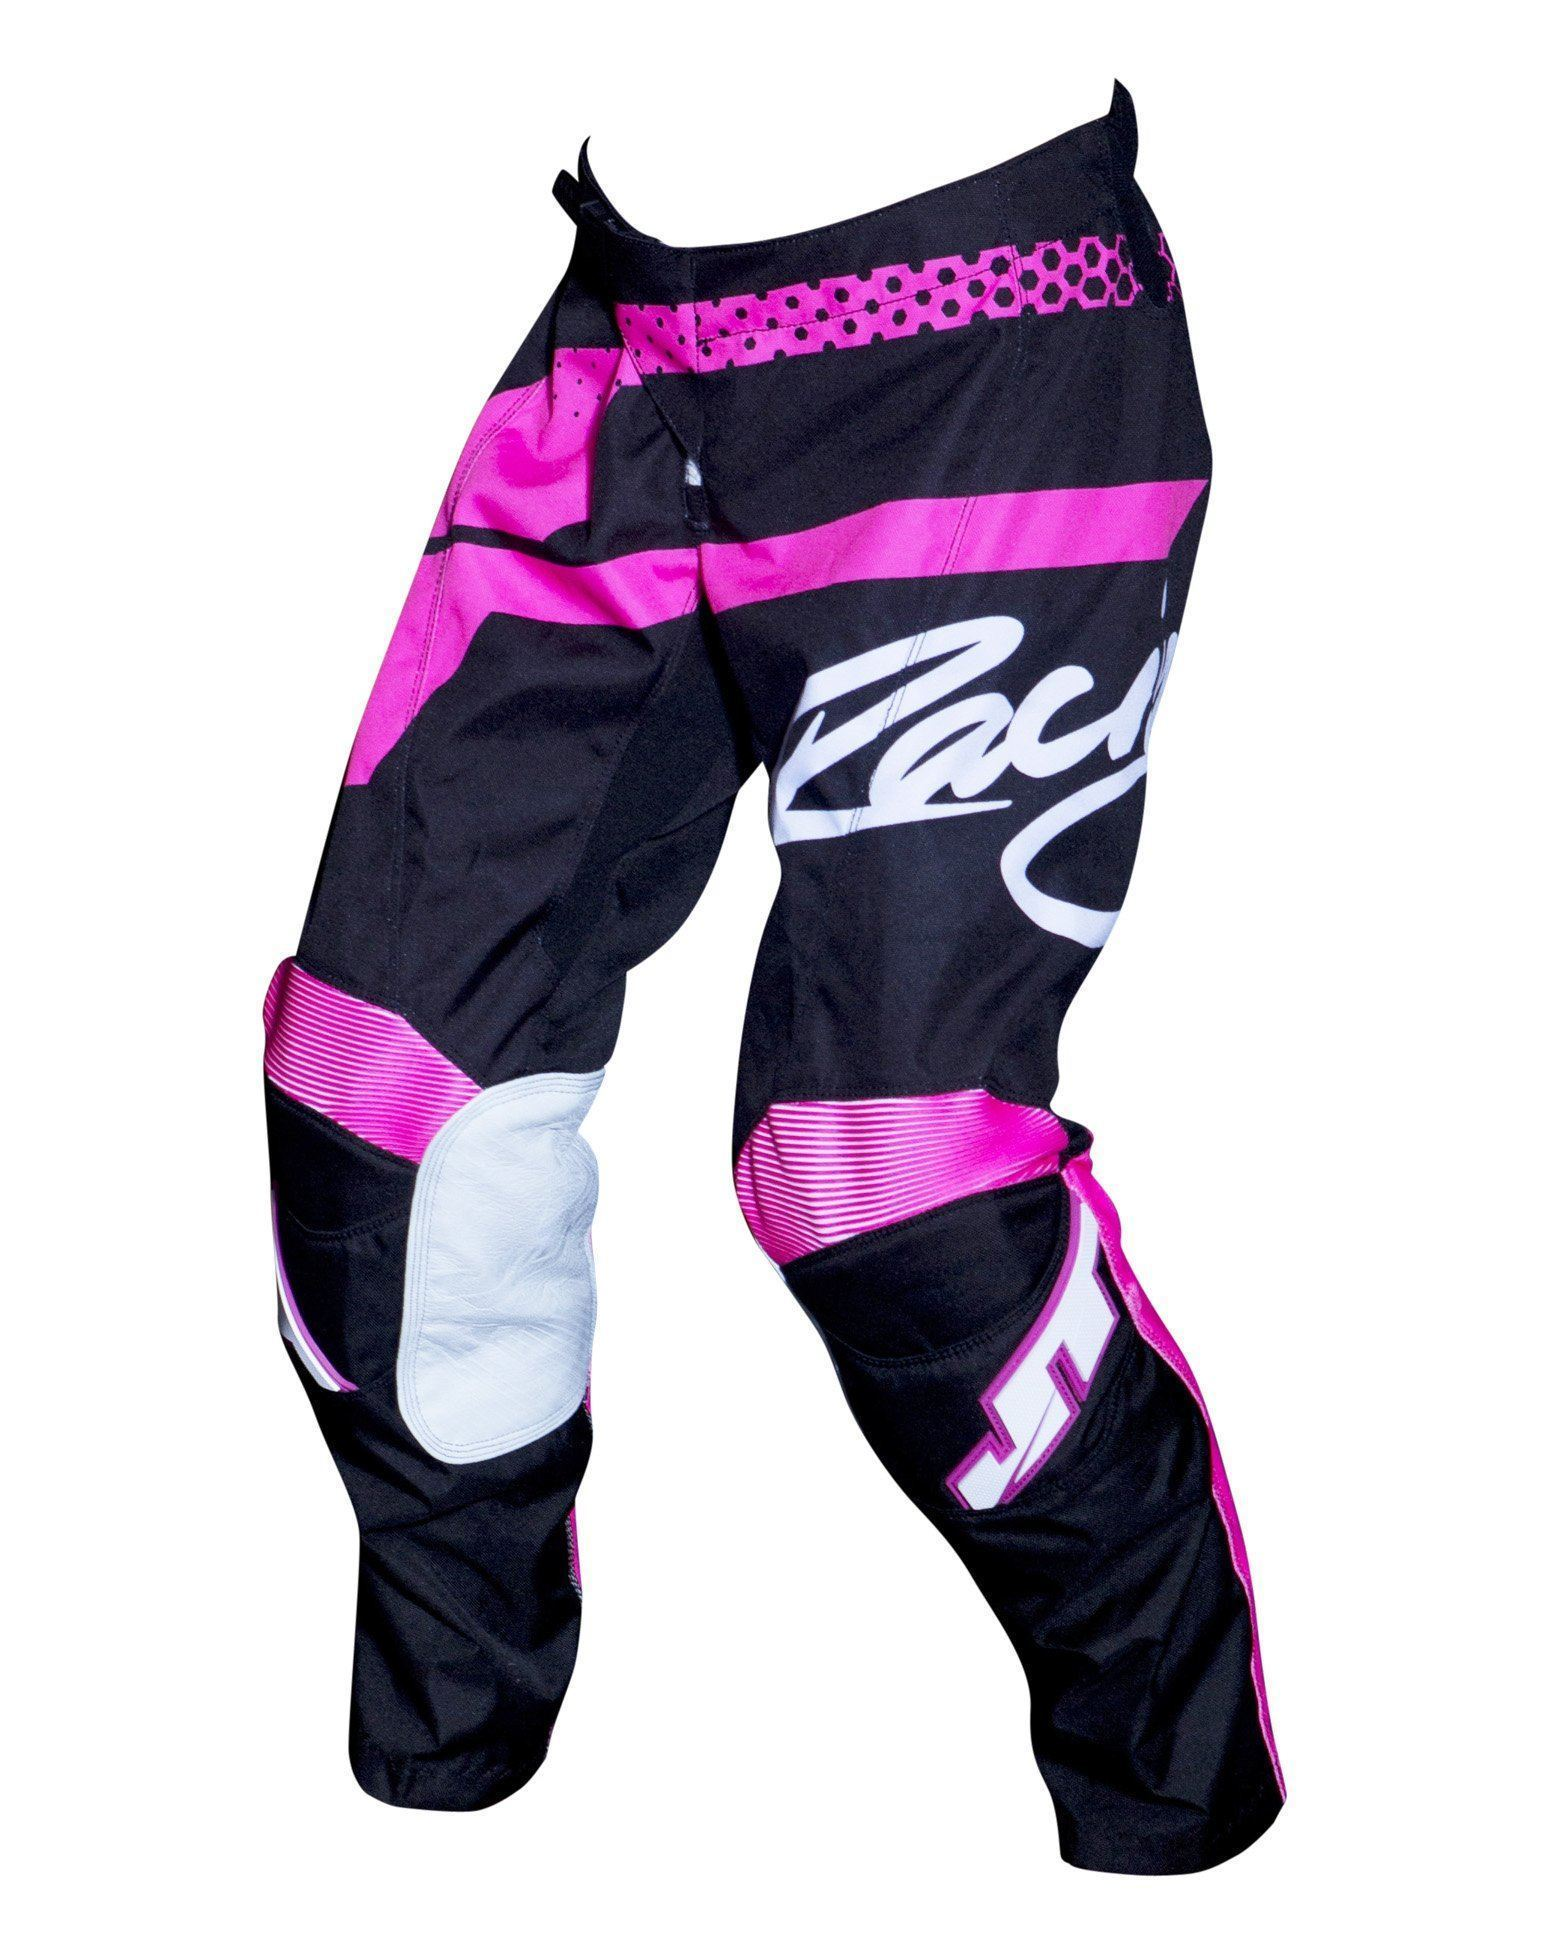 Youth Flex Hi-Flo Black/Pink Pant